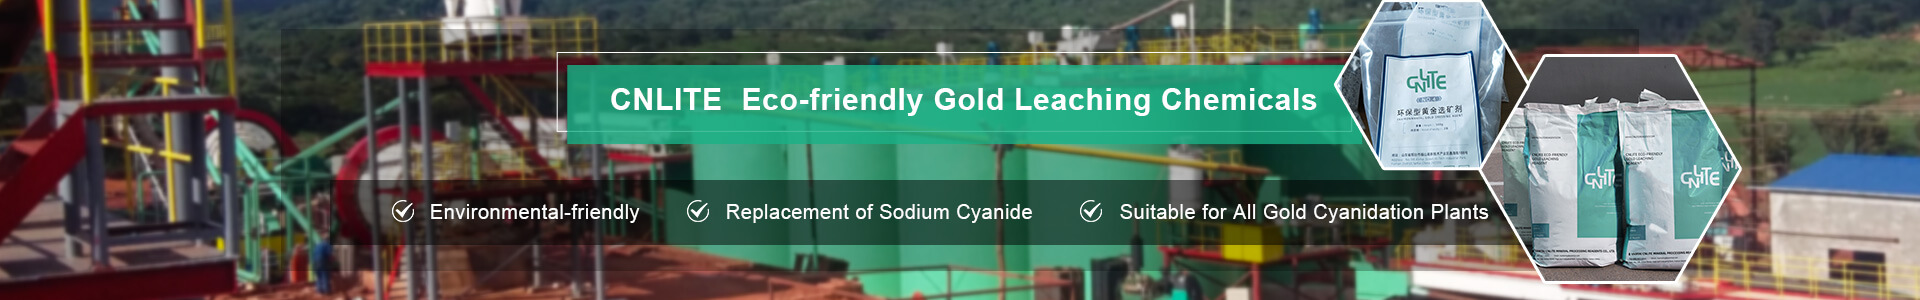 CNLITE Eco-friendly Gold Leaching Chemicals